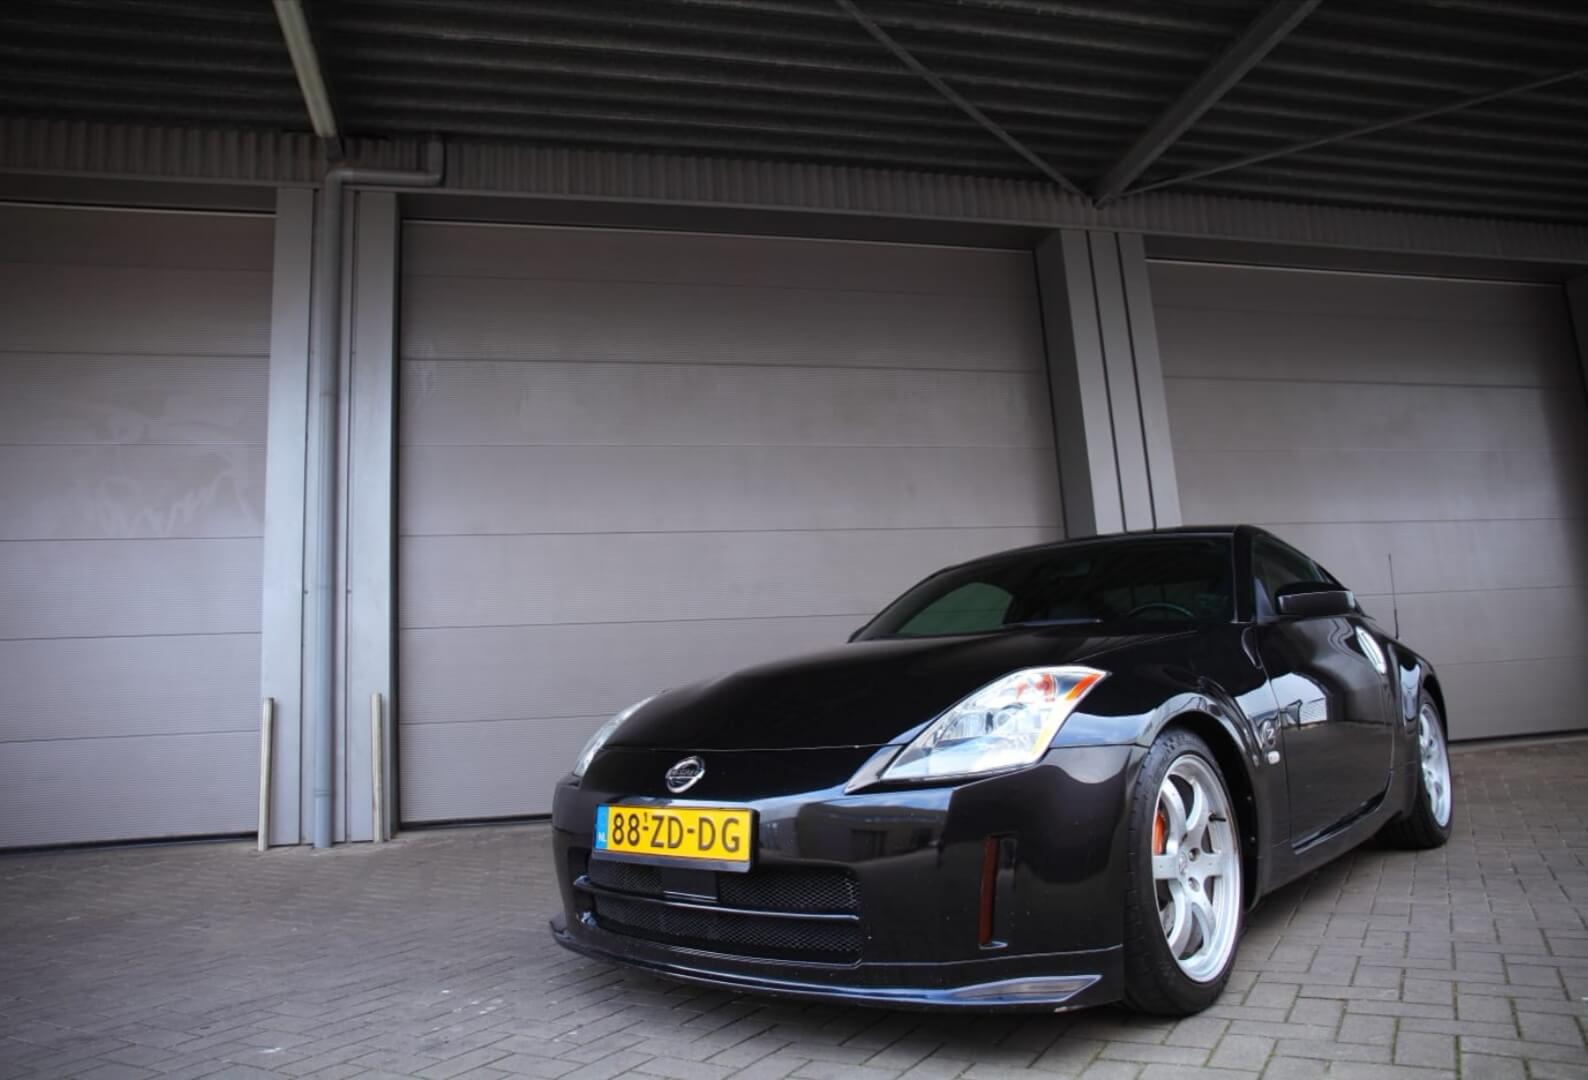 Nissan 350Z HR Track Edition 2008 – by Next Level Automotive – Go to nextlevelautomotive.eu